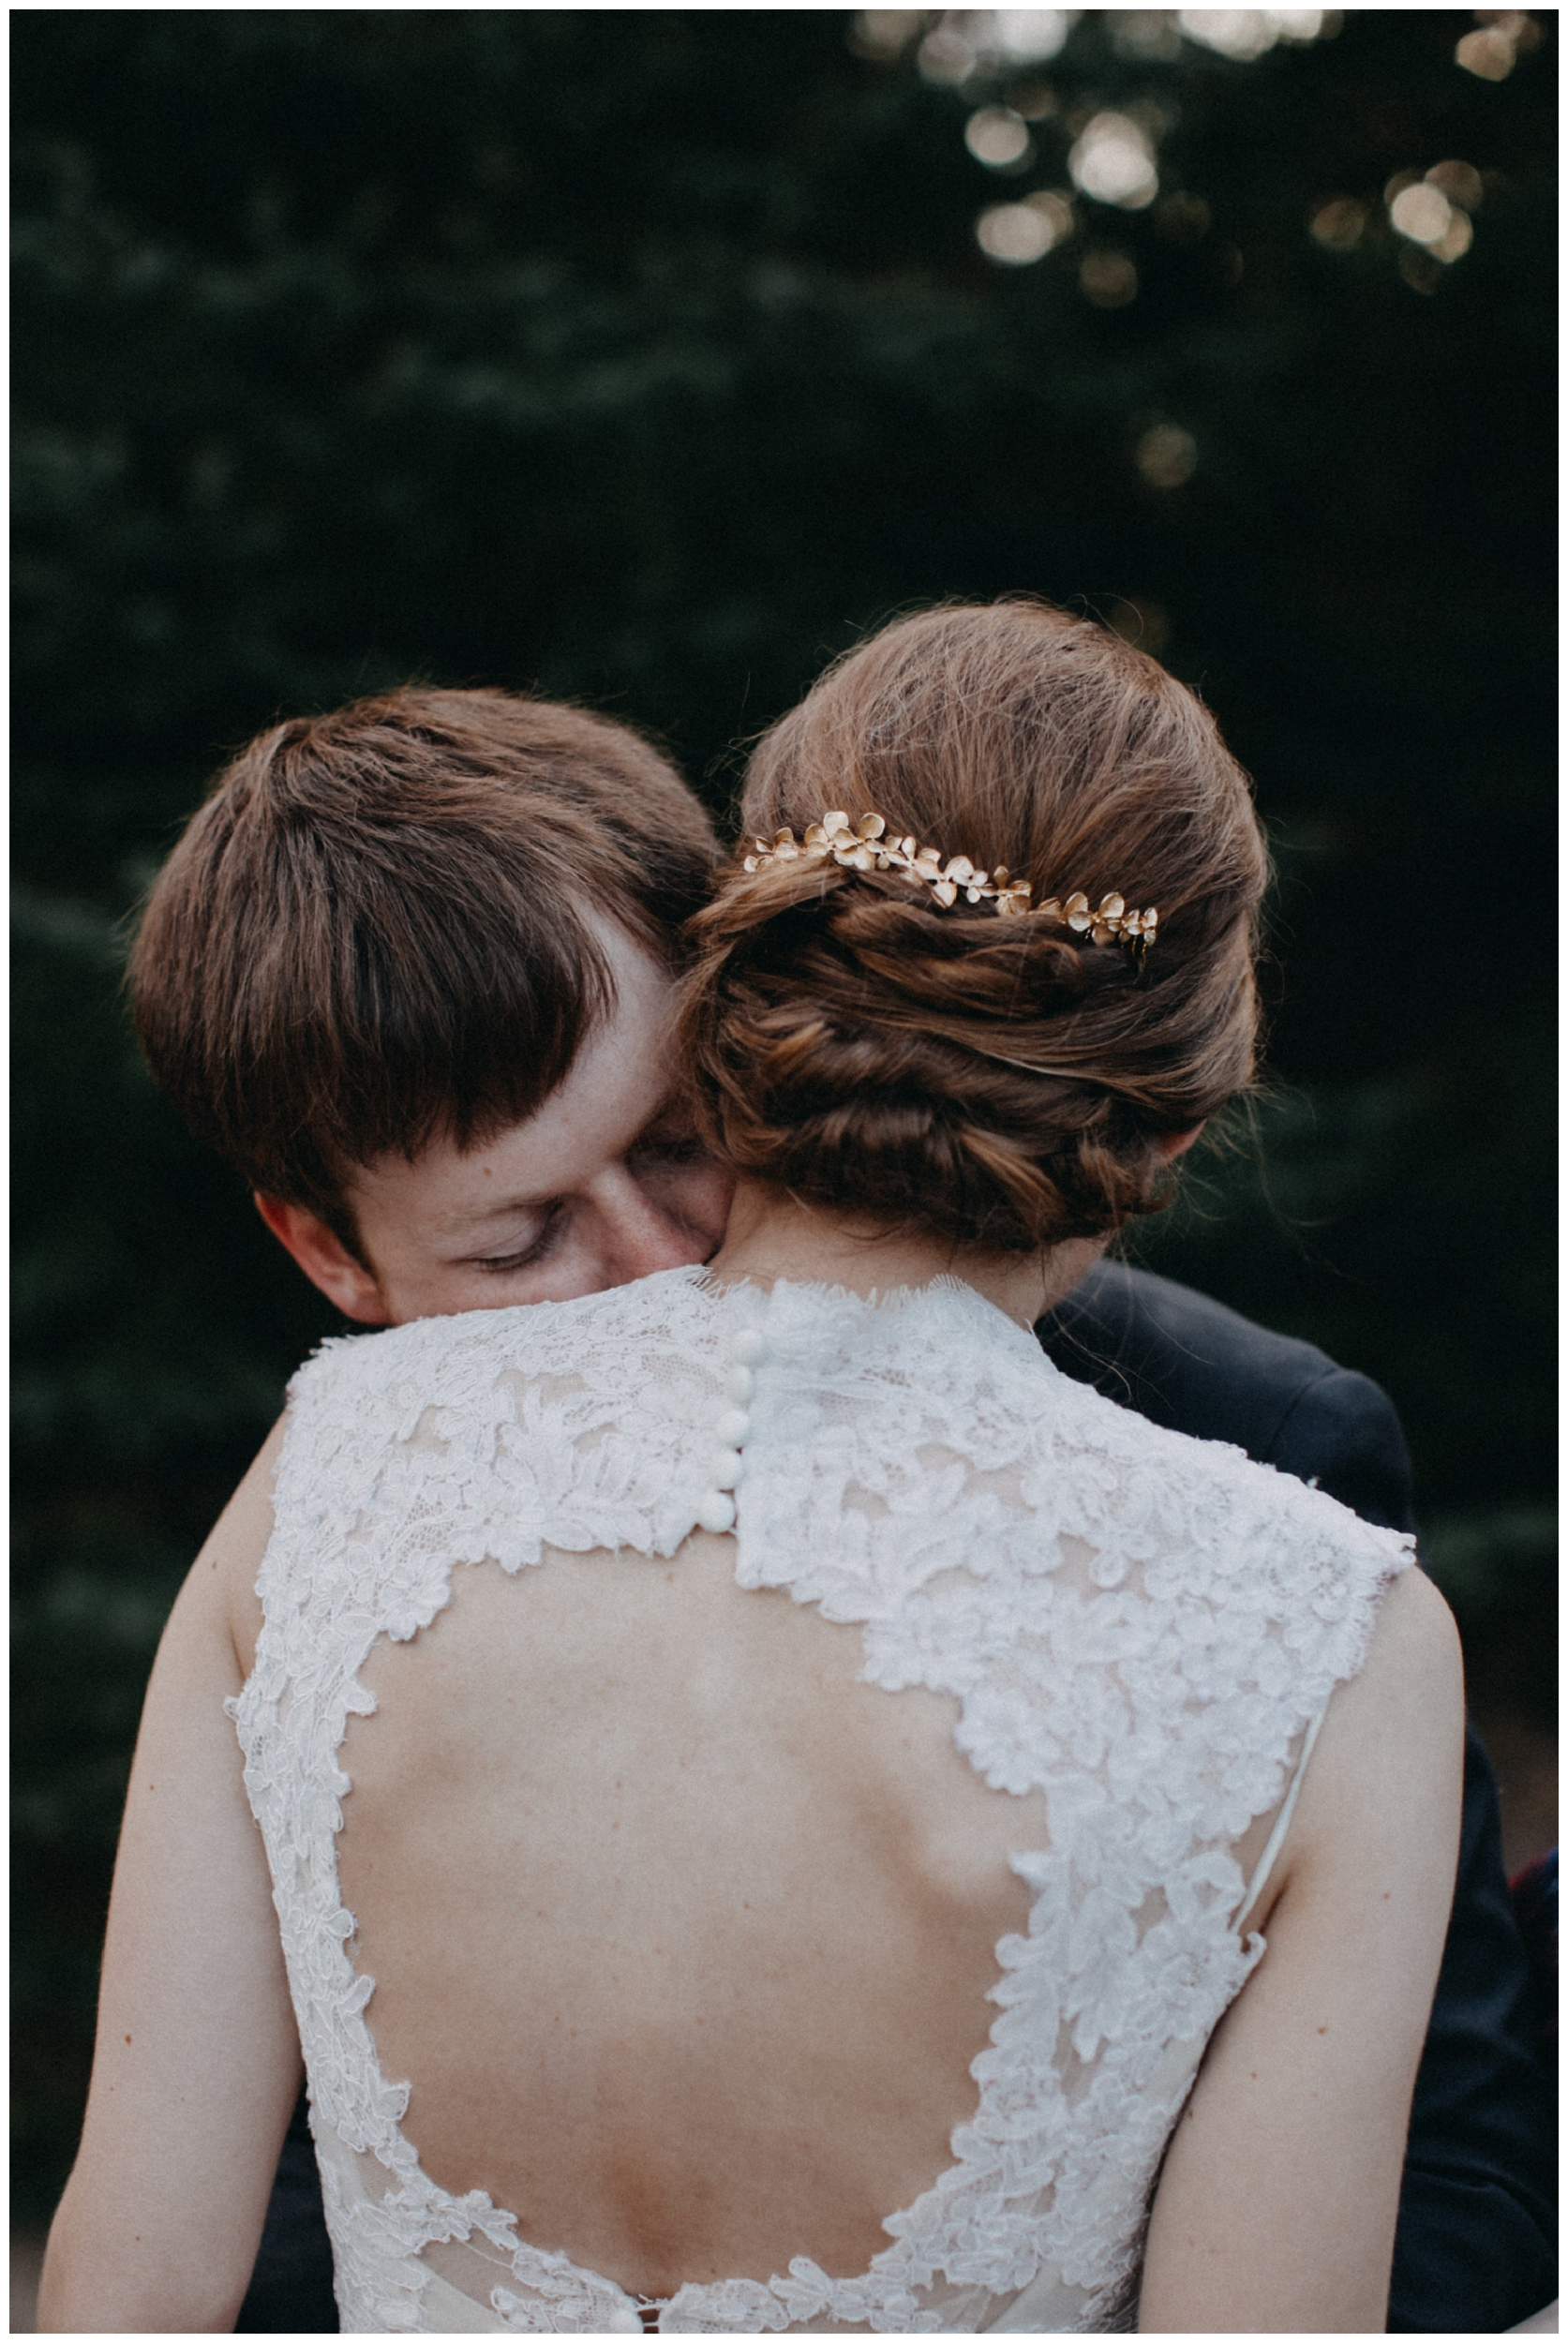 Emotional wedding at the Northland Arboretum